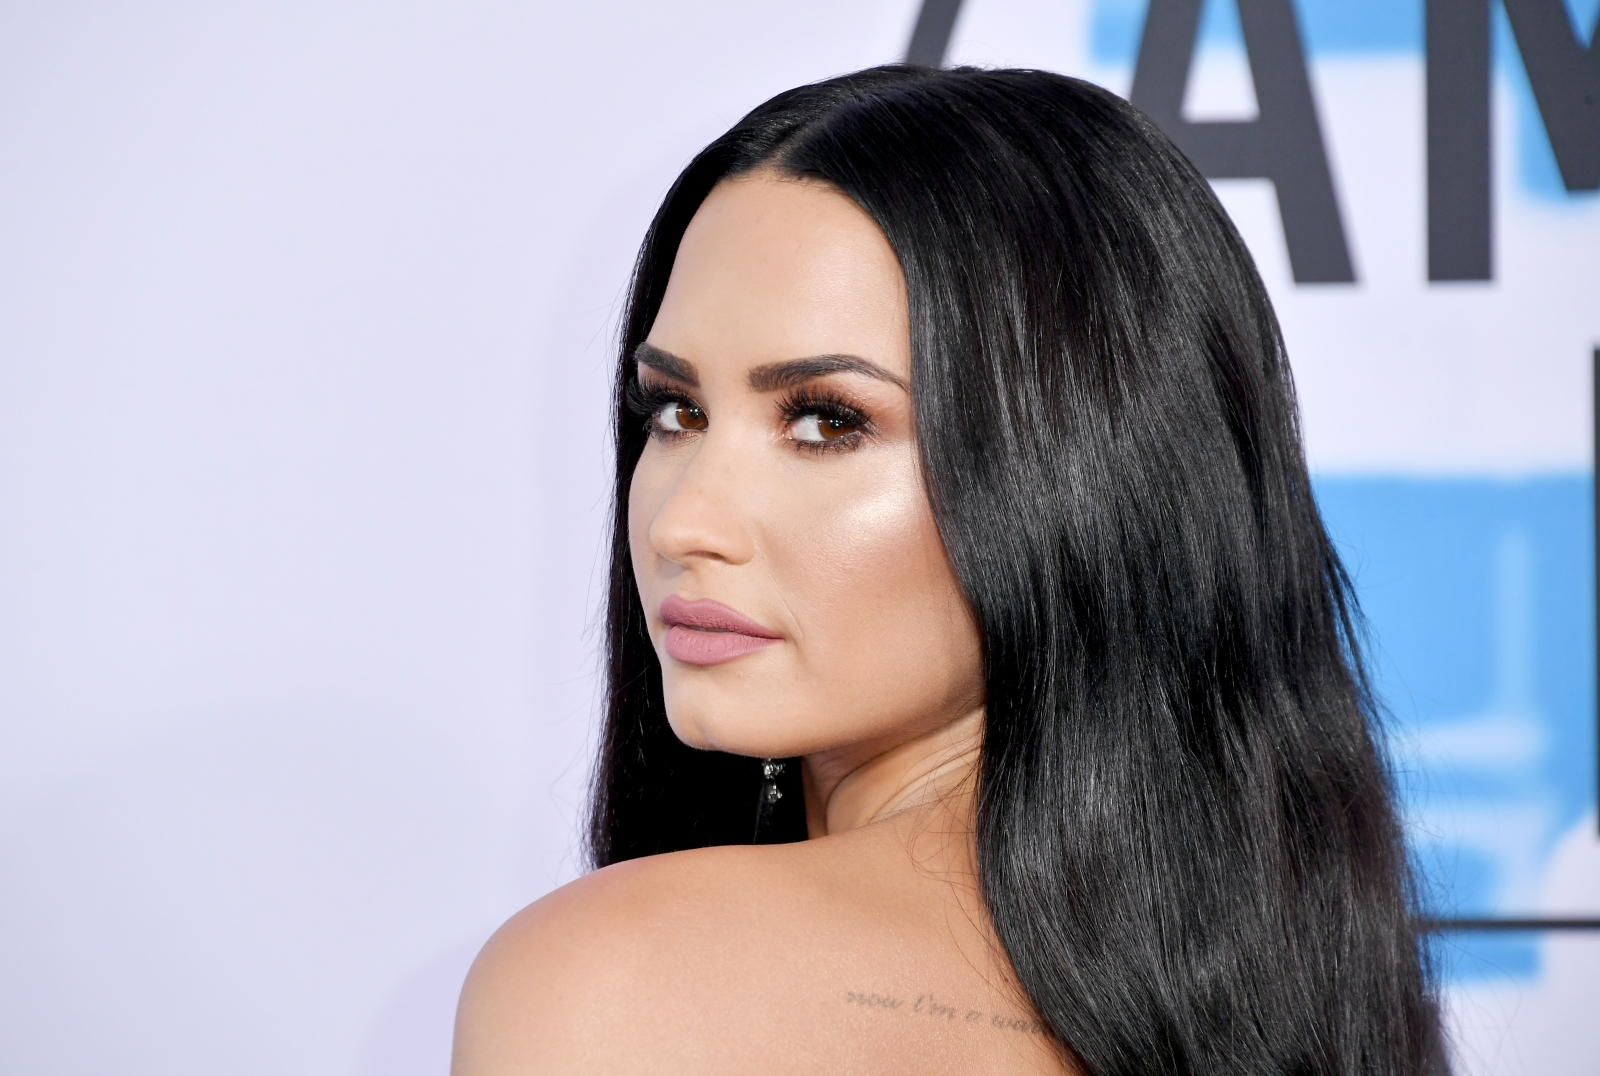 Demi Lovato sets pulses racing in eye-popping swimsuit ...